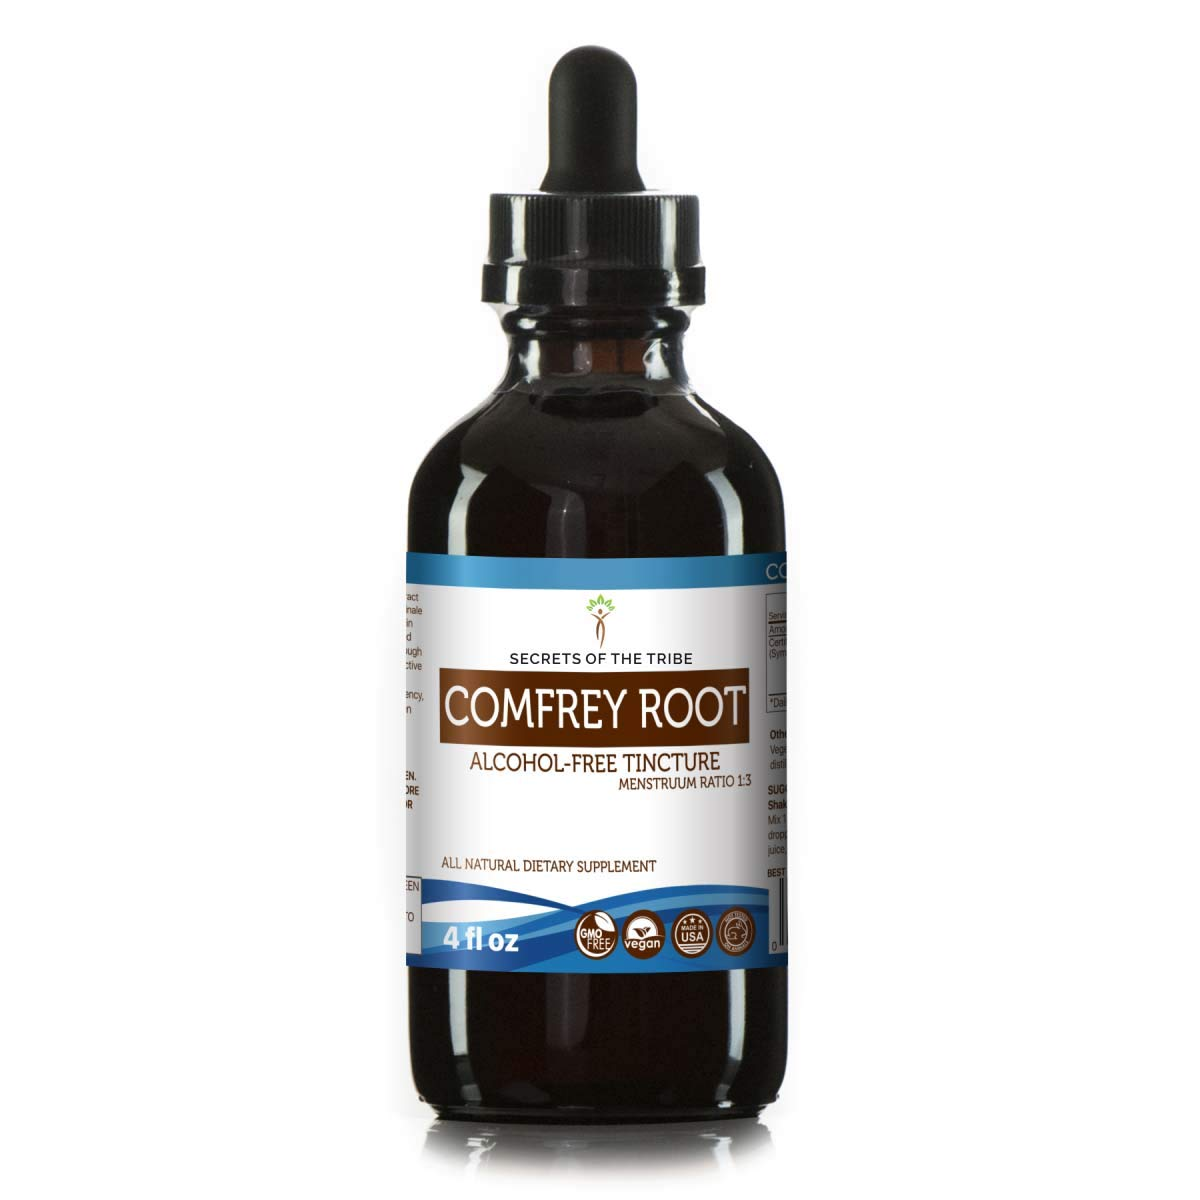 Comfrey Root Alcohol-Free Liquid Extract, Organic Comfrey Symphytum Officinale Dried Root Tincture Supplement 4 FL OZ